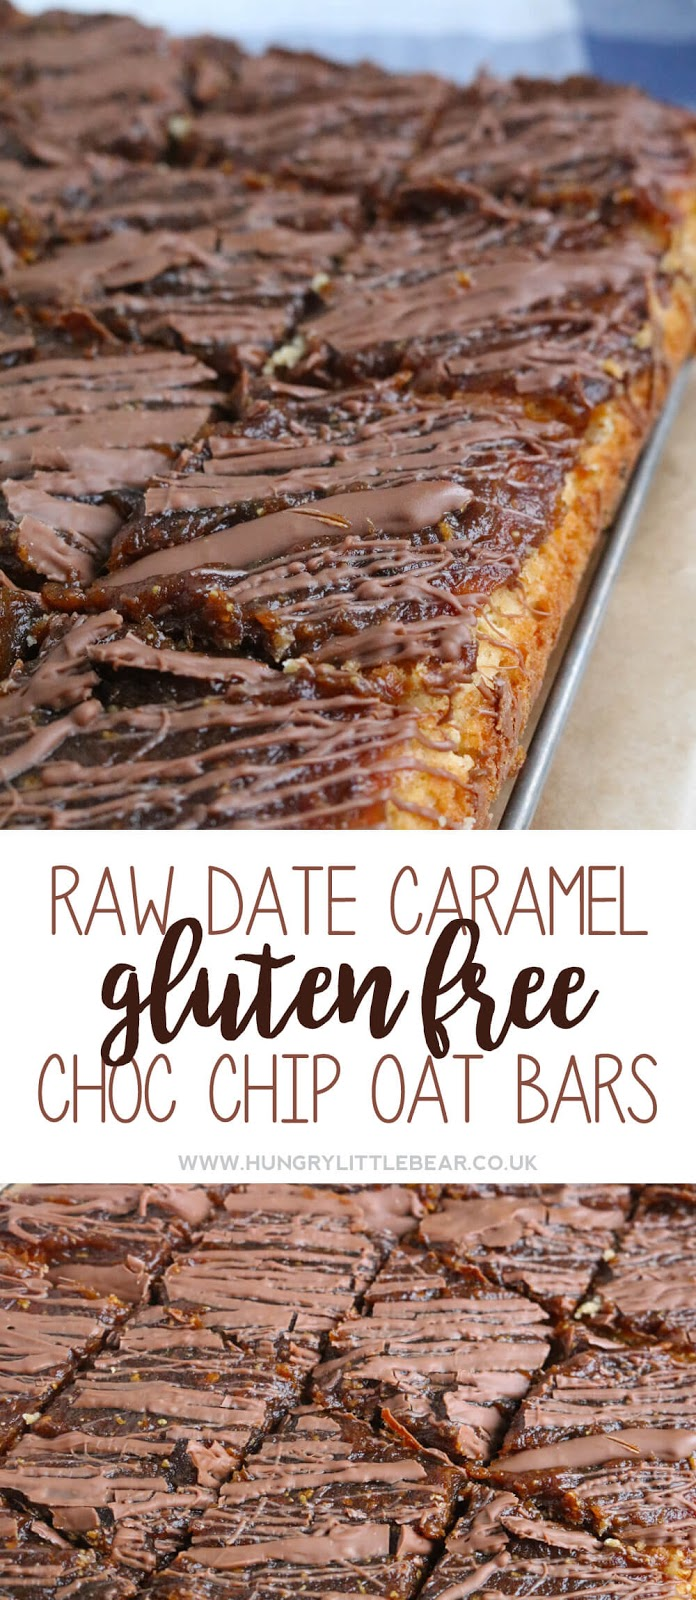 Raw Date Caramel Gluten Free Chocolate Chip Oat Bars | Hungry Little Bear